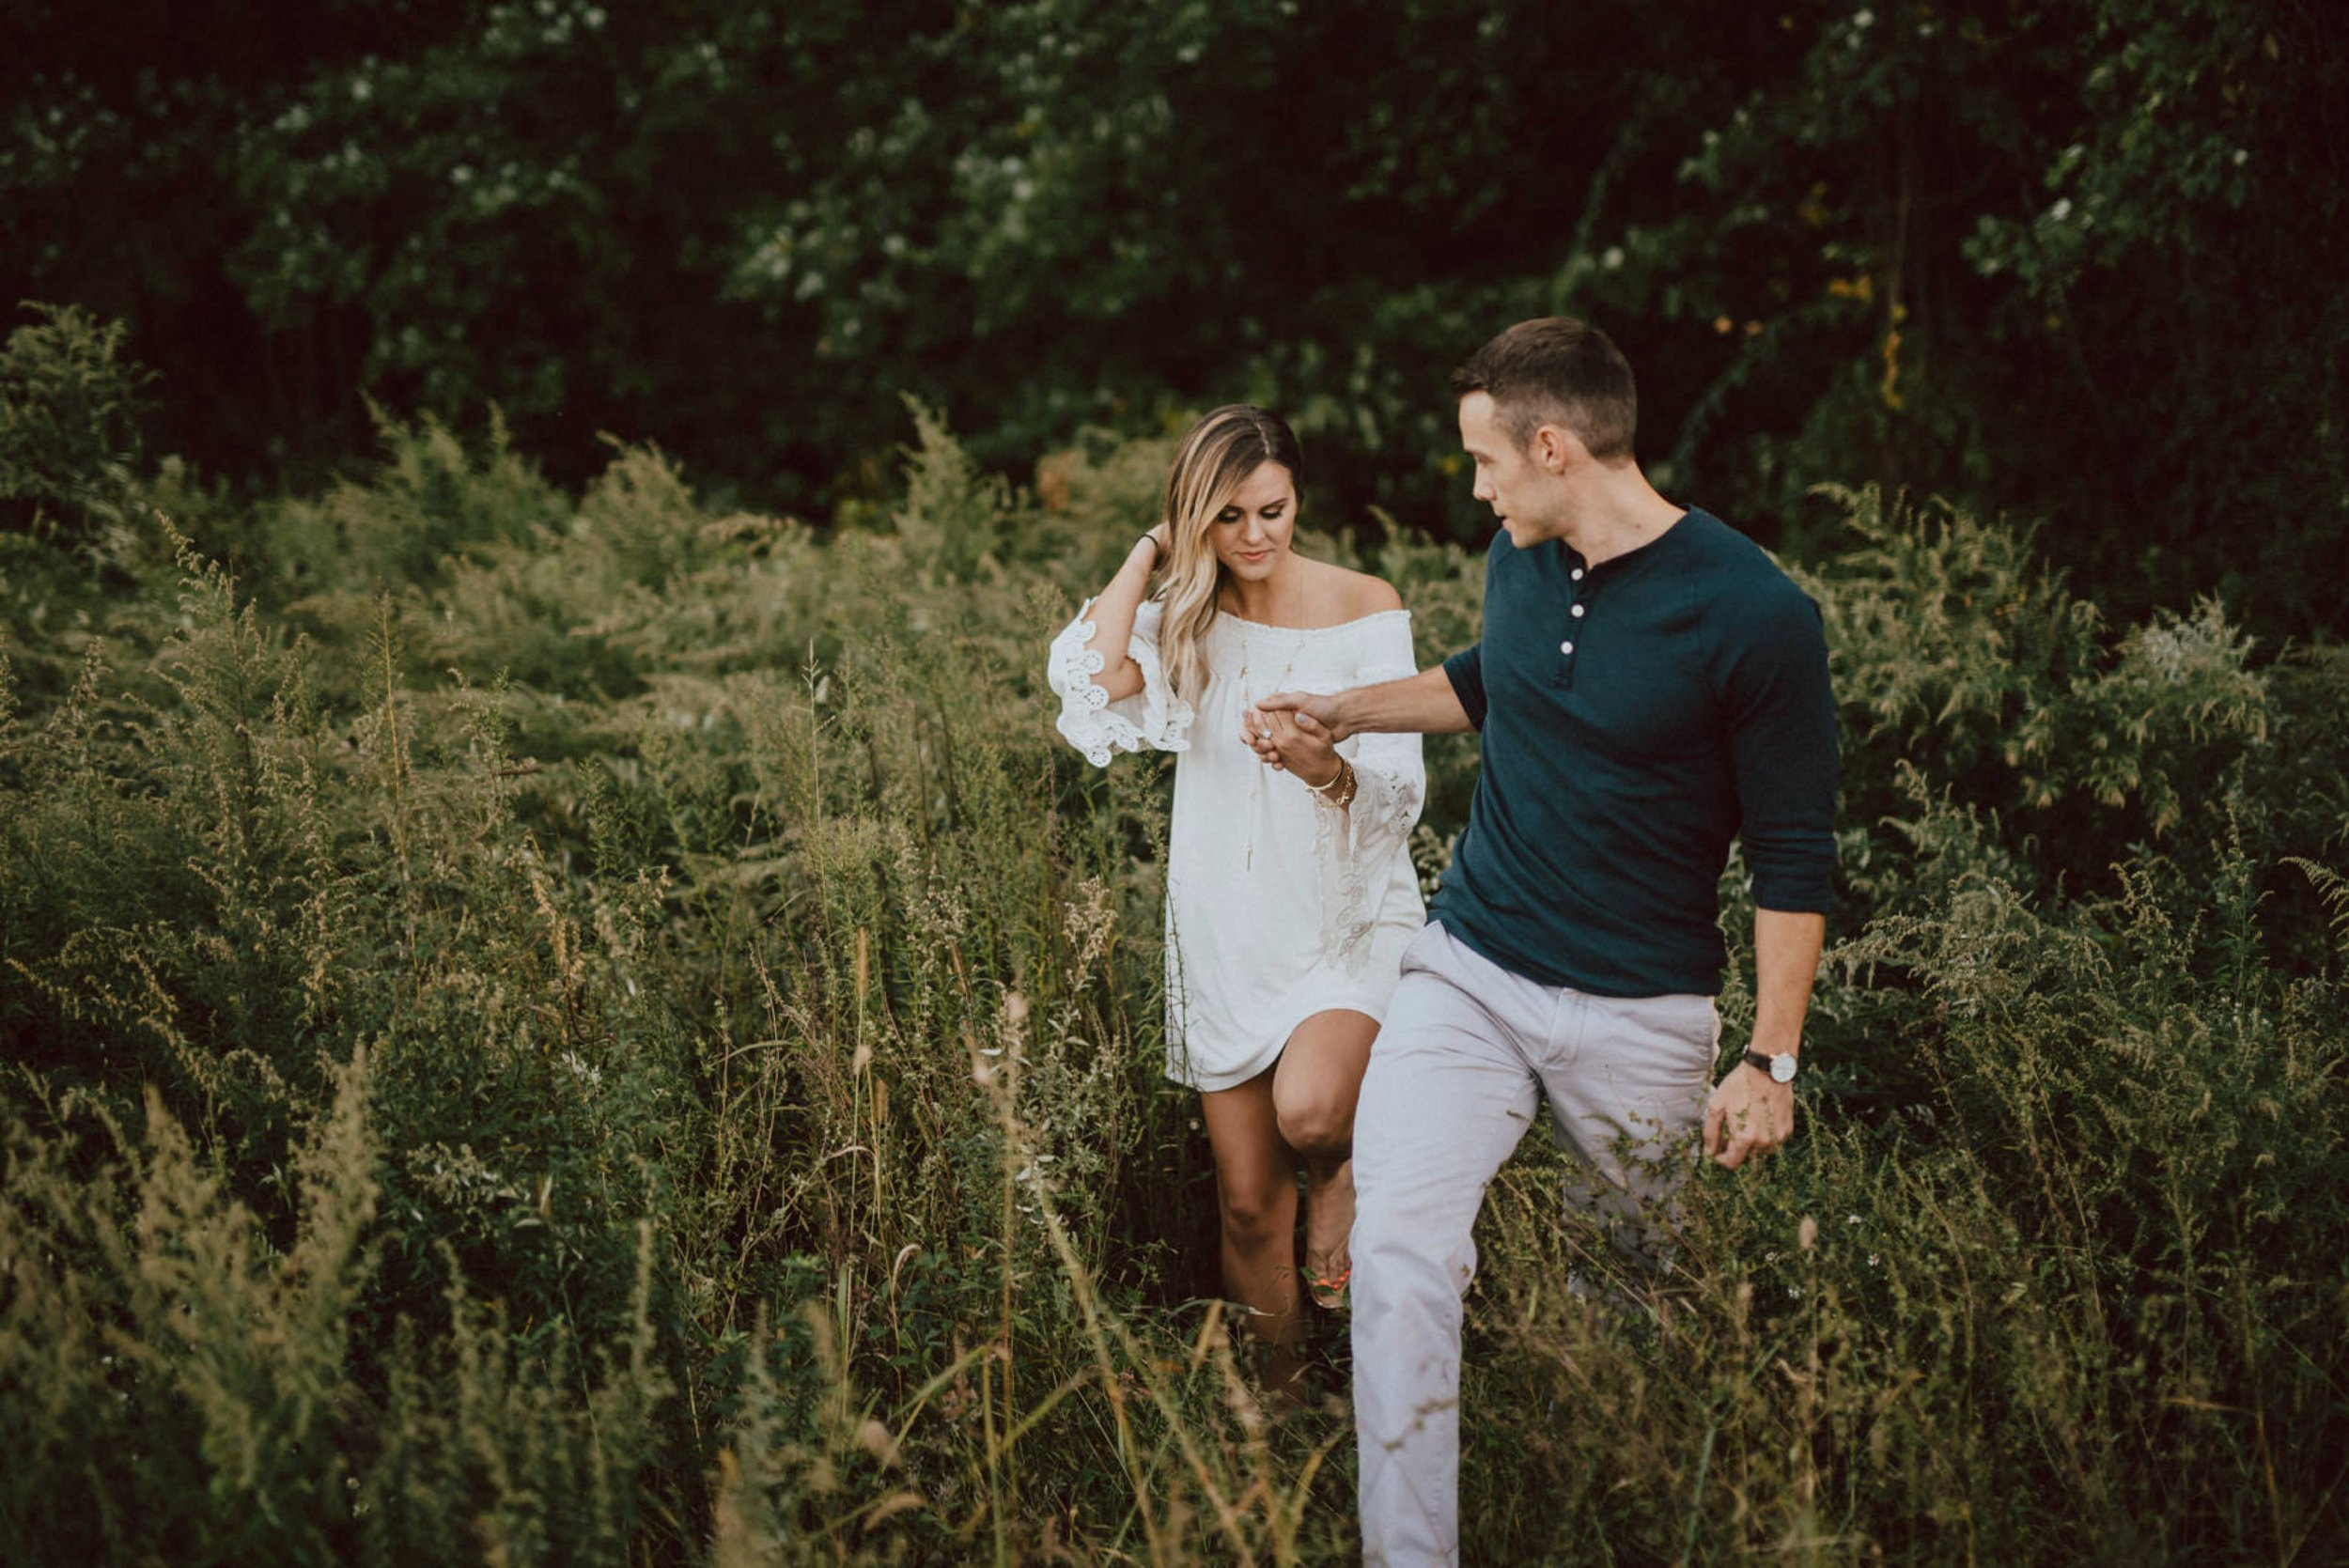 elkton-maryland-engagement-session-23.jpg